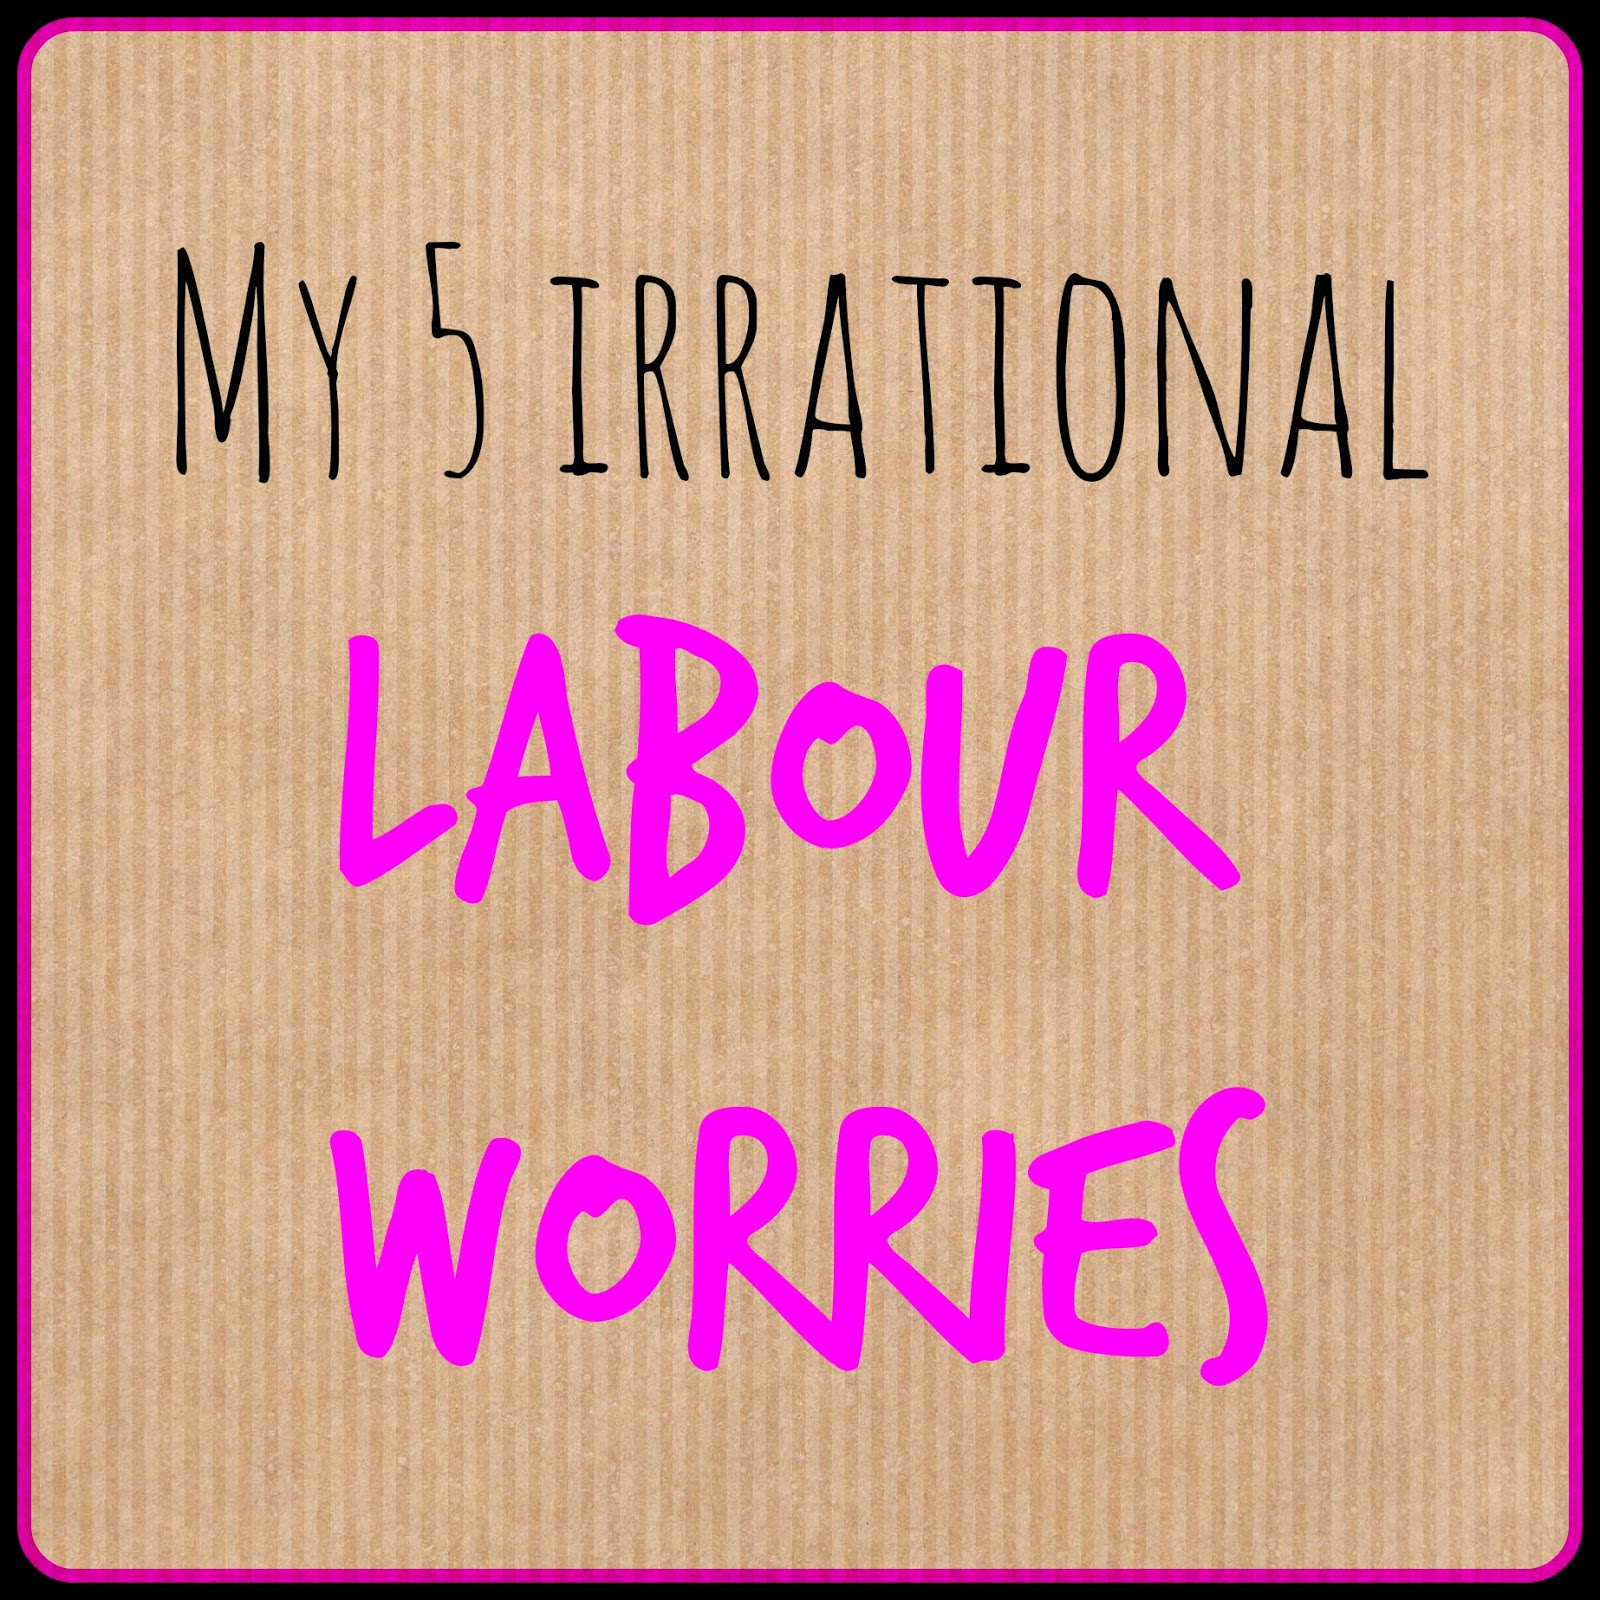 My 5 irrational labour worries graphic